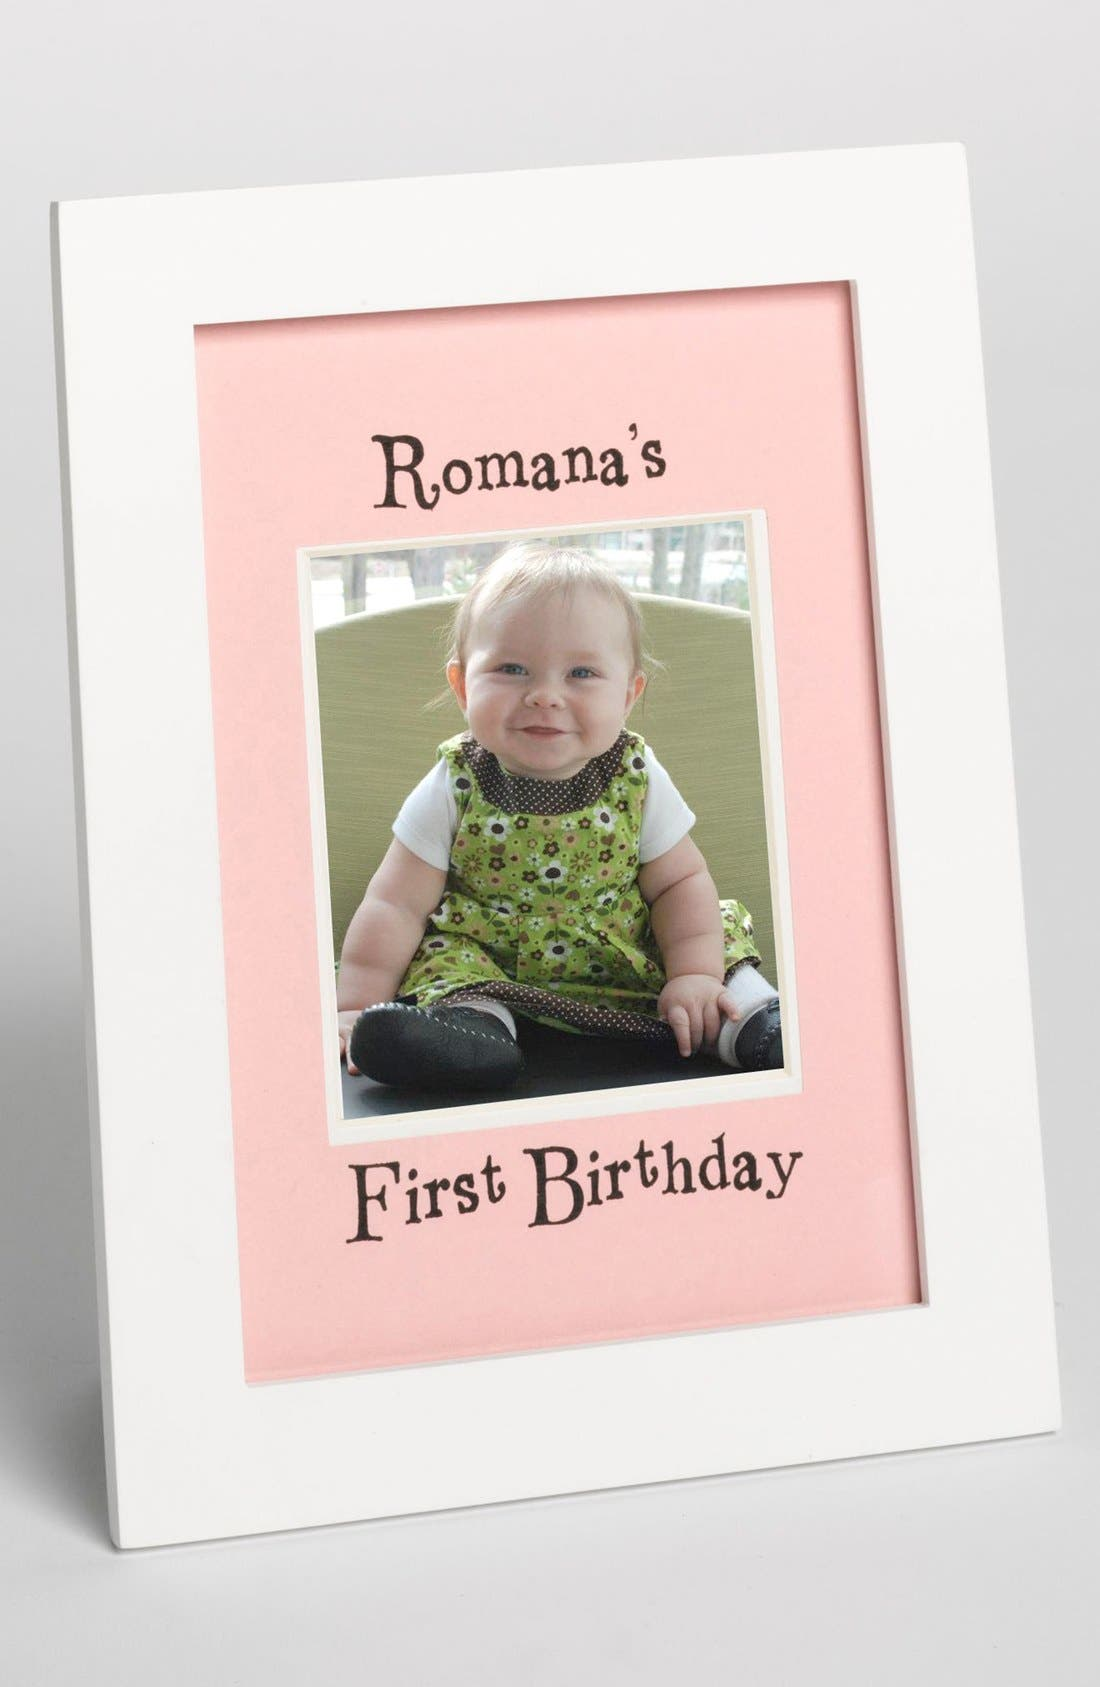 Alternate Image 1 Selected - FRAME PINK FIRST BIRTHDAY